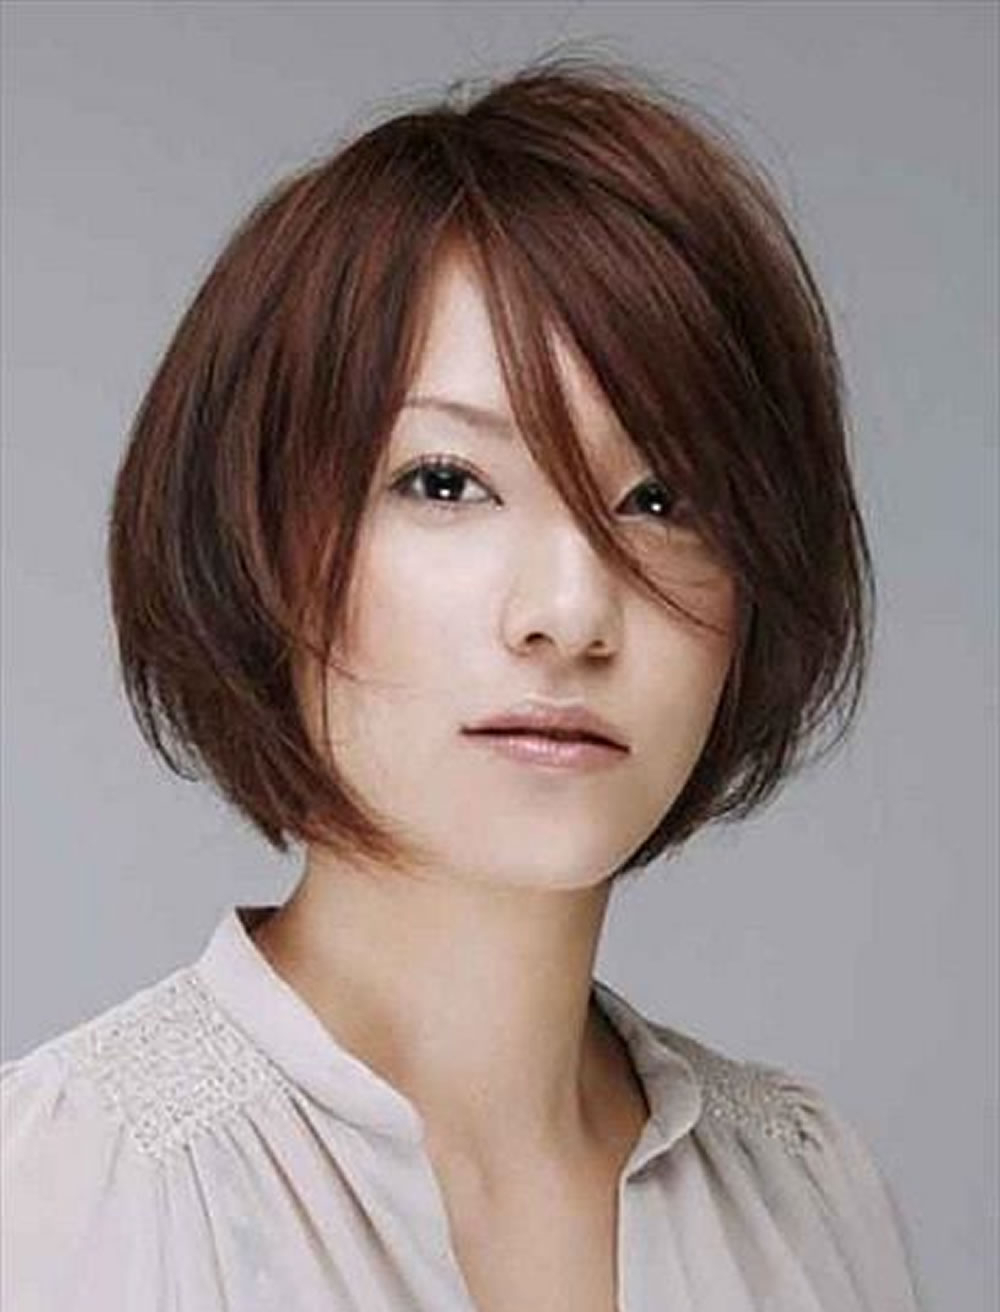 50 Glorious Short Hairstyles For Asian Women For Summer Days 2018 With Regard To Short Hairstyles For Asian Round Face (View 3 of 25)